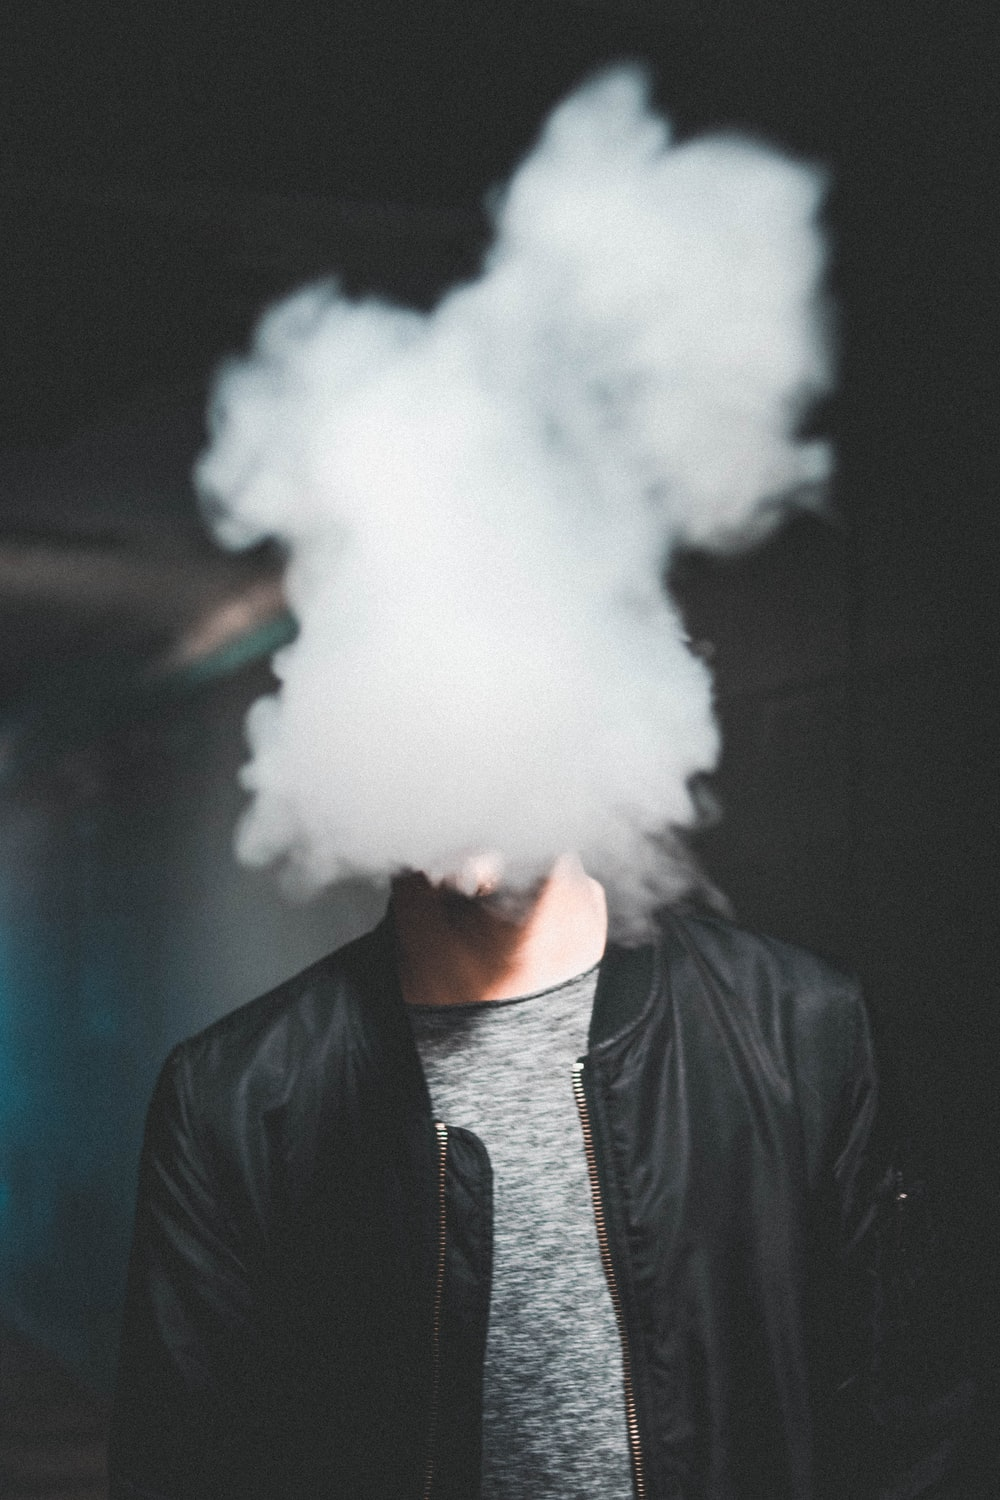 man wearing black leather zip-up jacket while blowing smoke